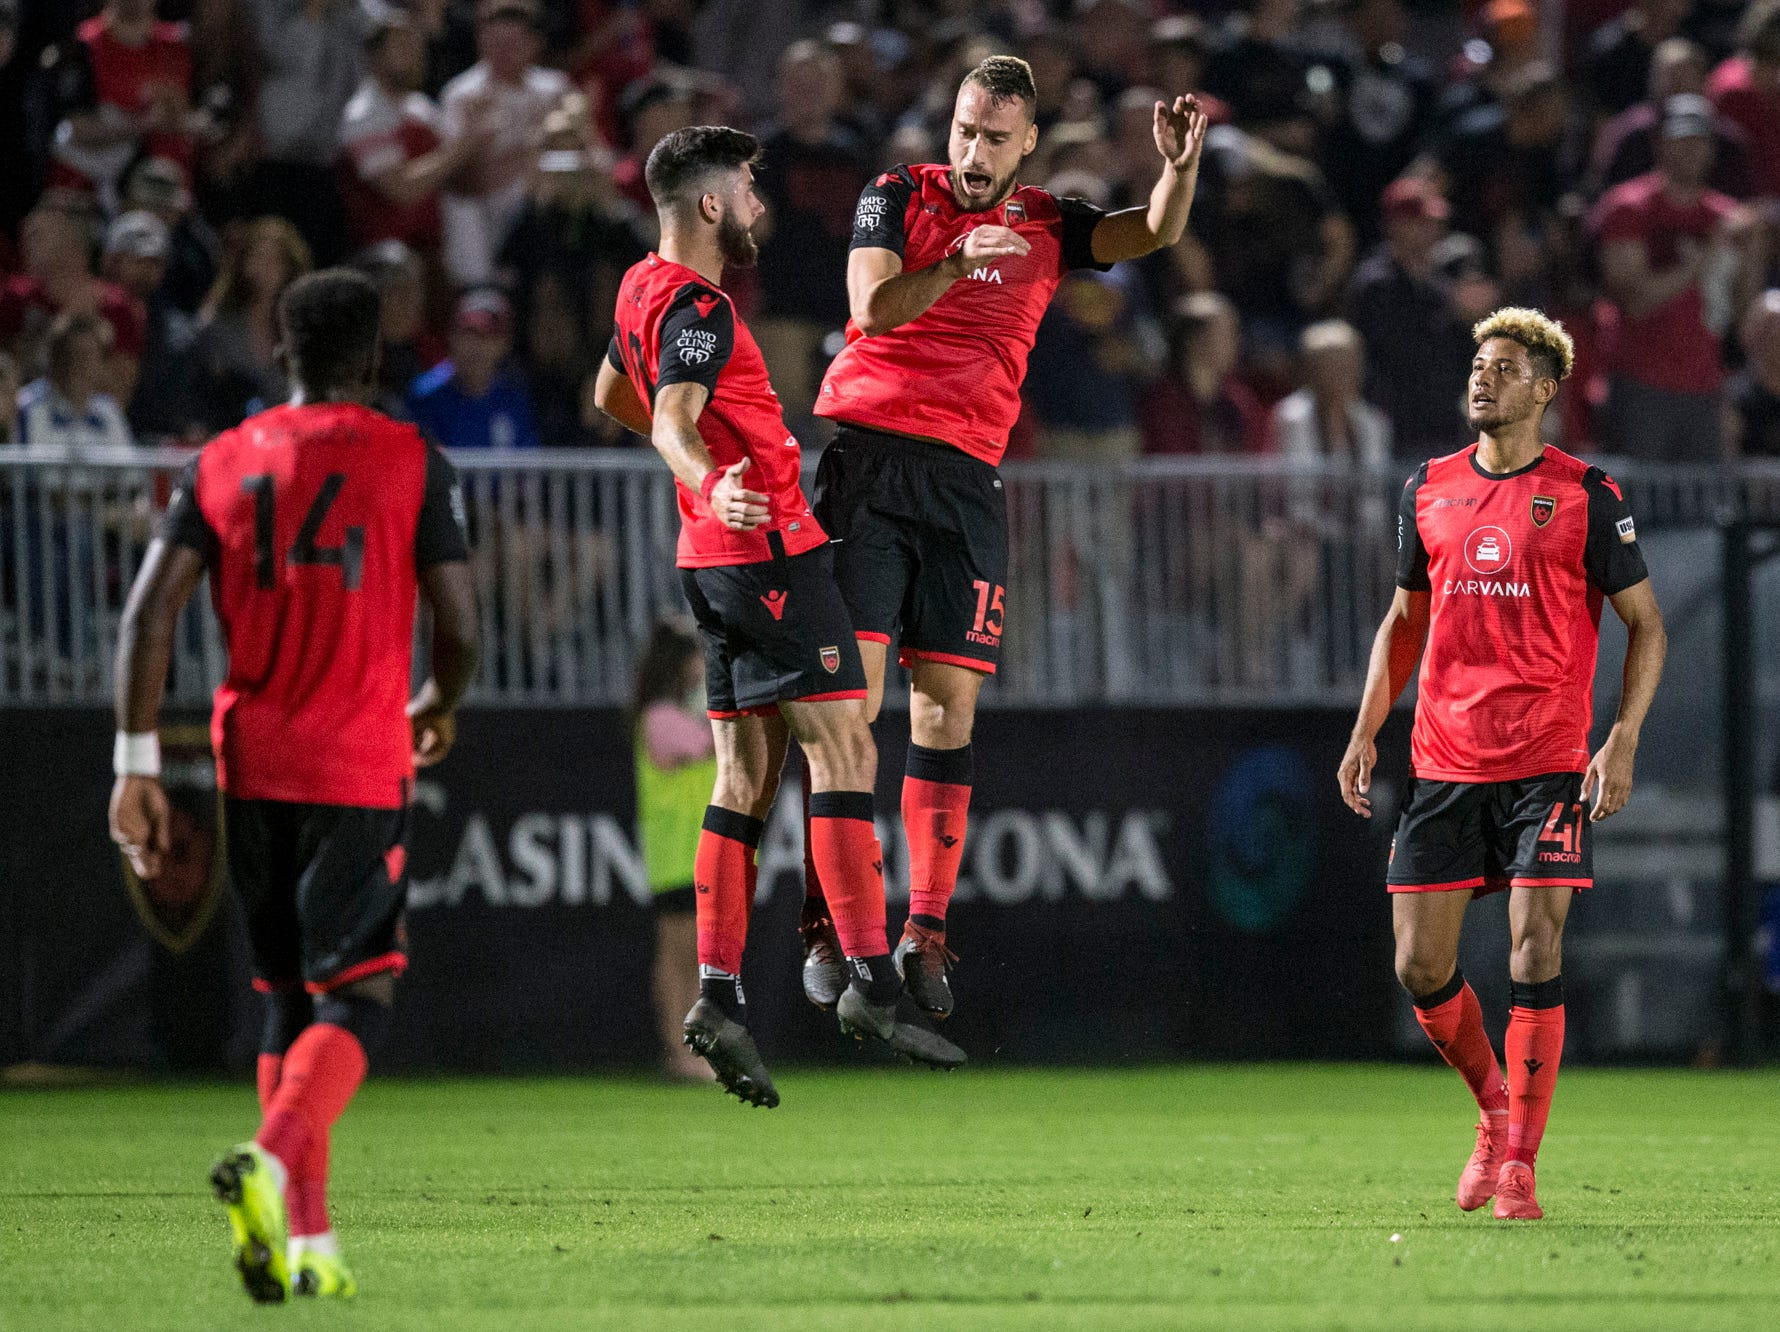 Phoenix Rising's Joseph Farrell (15) celebrates with Jon Bakero after scoring a goal against Colorado Springs in the first half on Saturday, Mar. 30, 2019, at Casino Arizona Field in Tempe, Ariz.